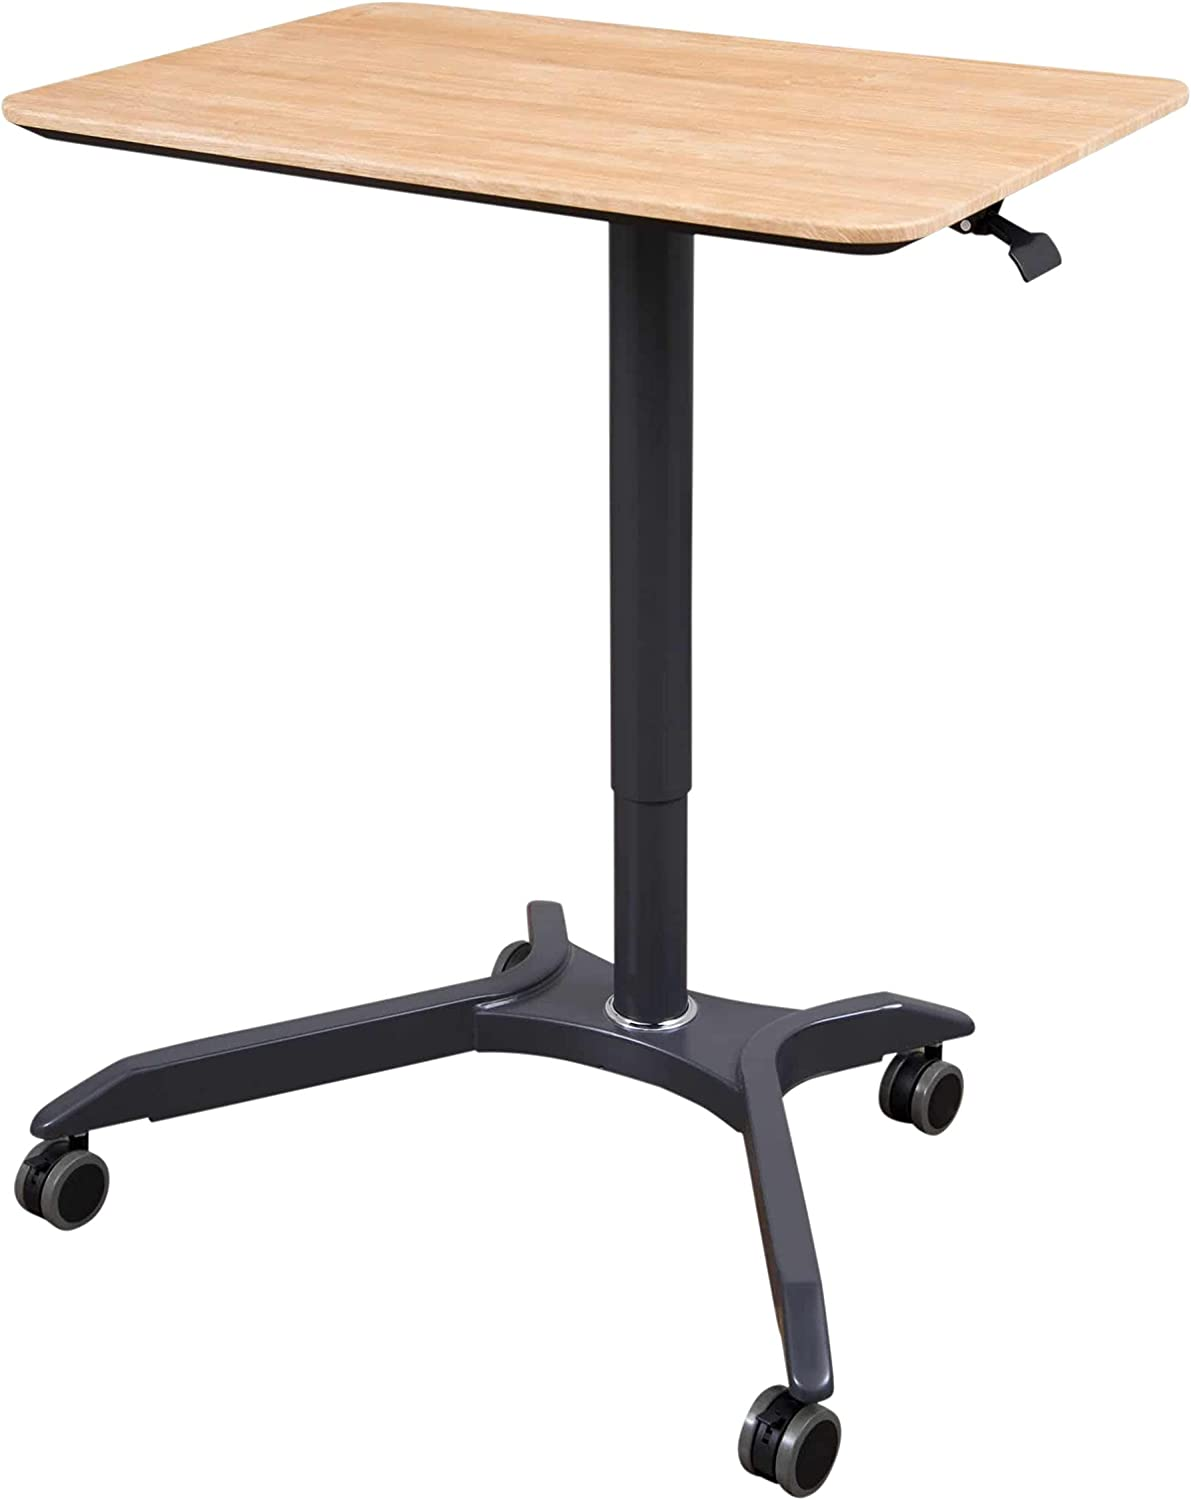 Stand Up Desk Store Ranking TOP2 Pneumatic Mobile Height Same day shipping Rolling L Adjustable